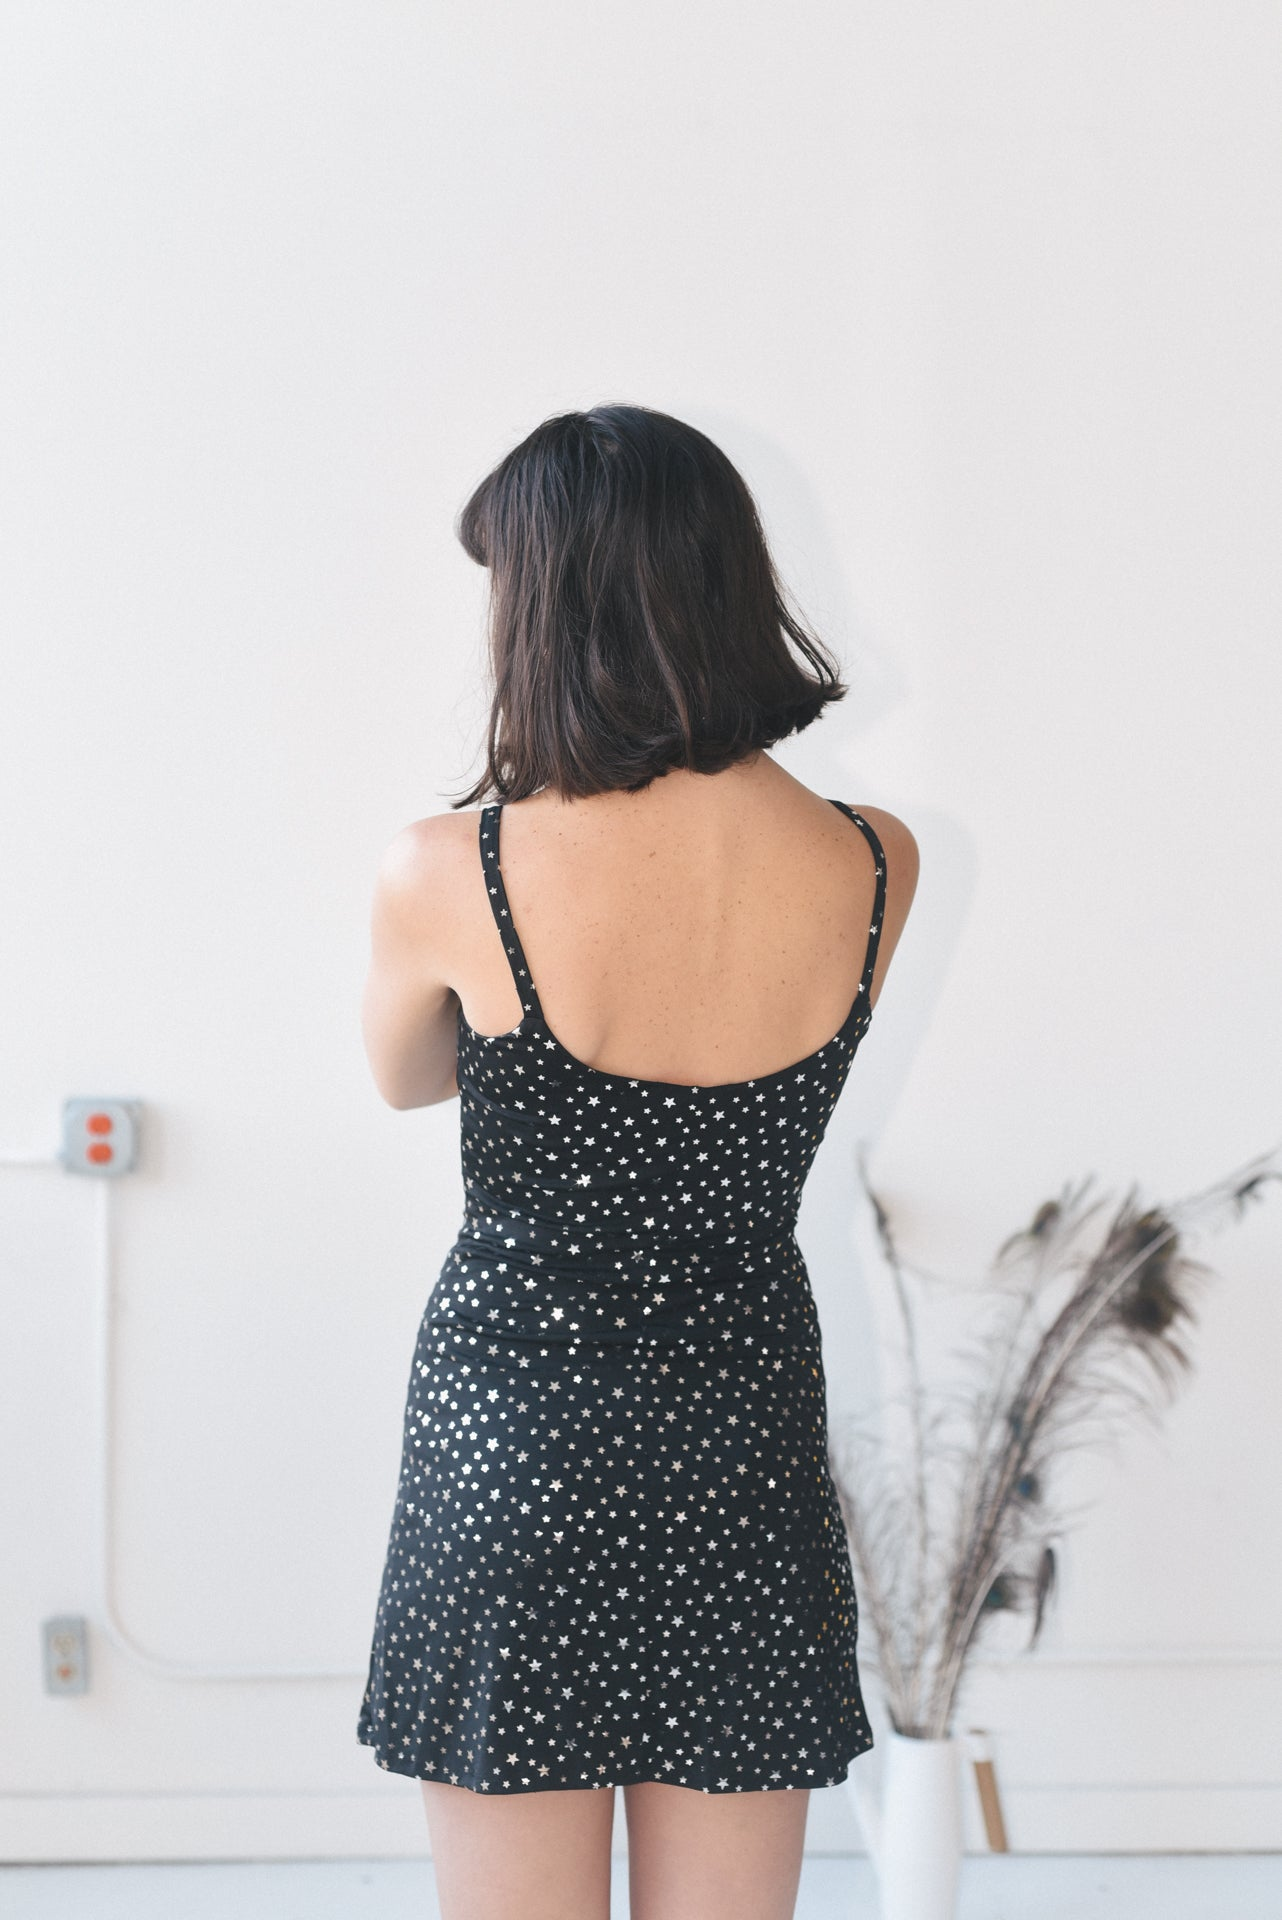 STAR PATTERN SPAGHETTI STRAP DRESS